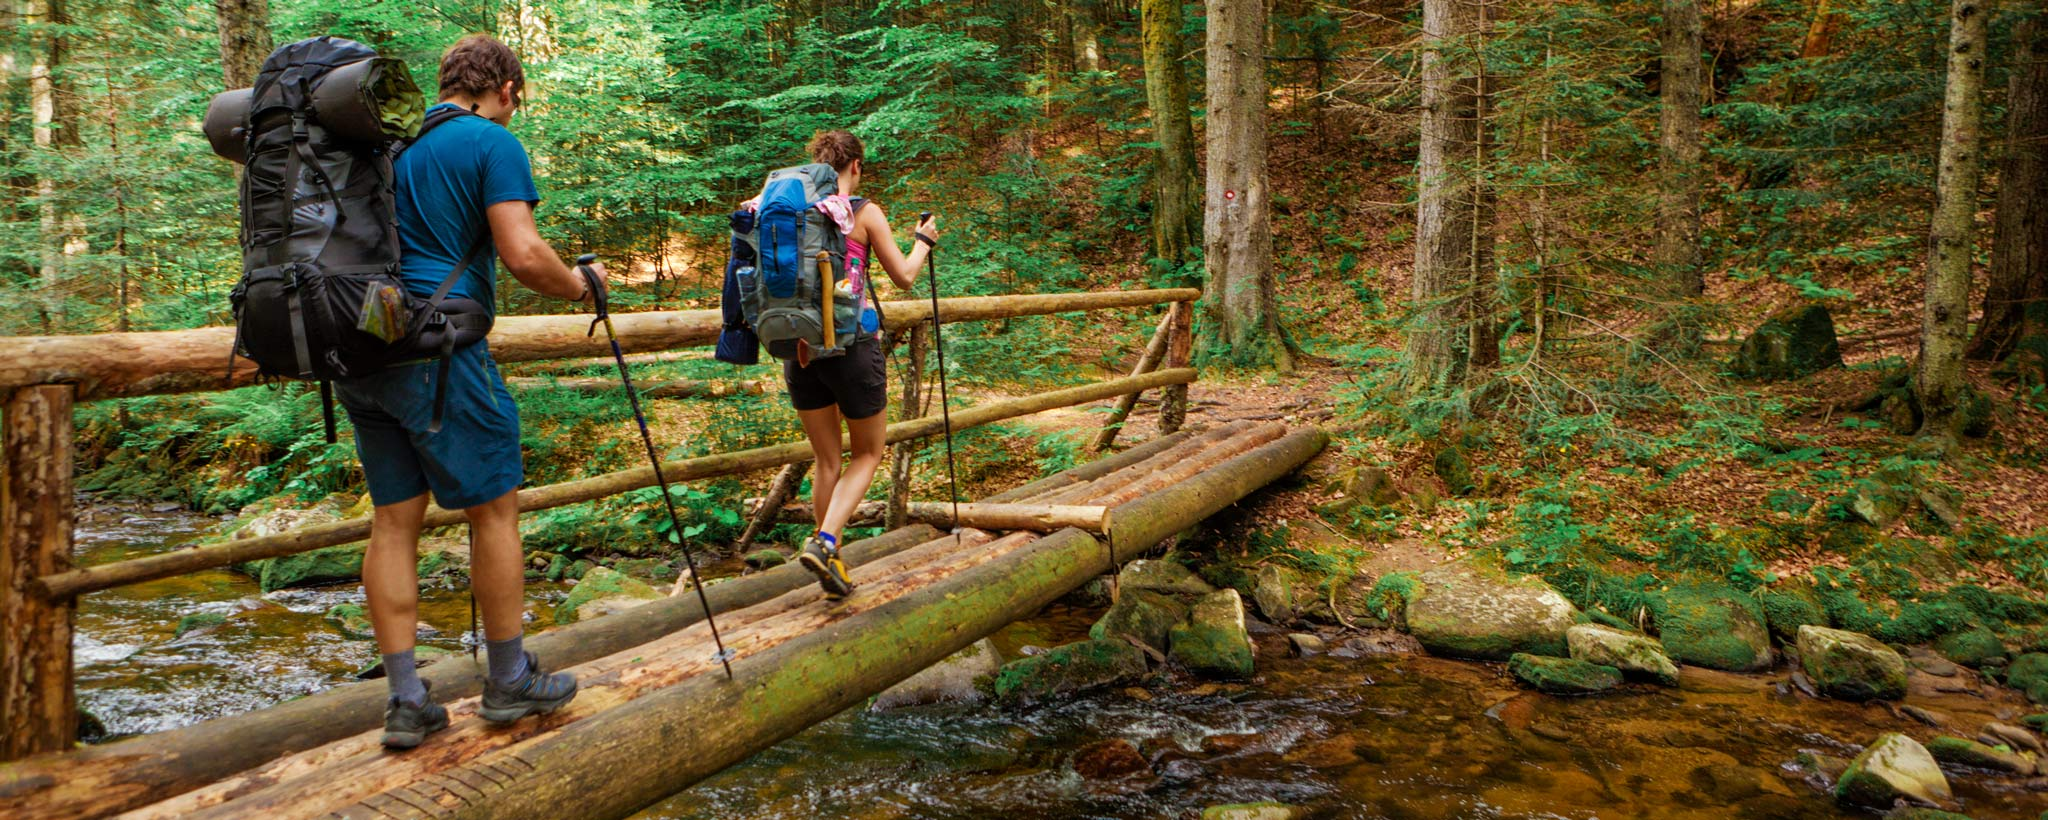 hikers  crossing footbridge